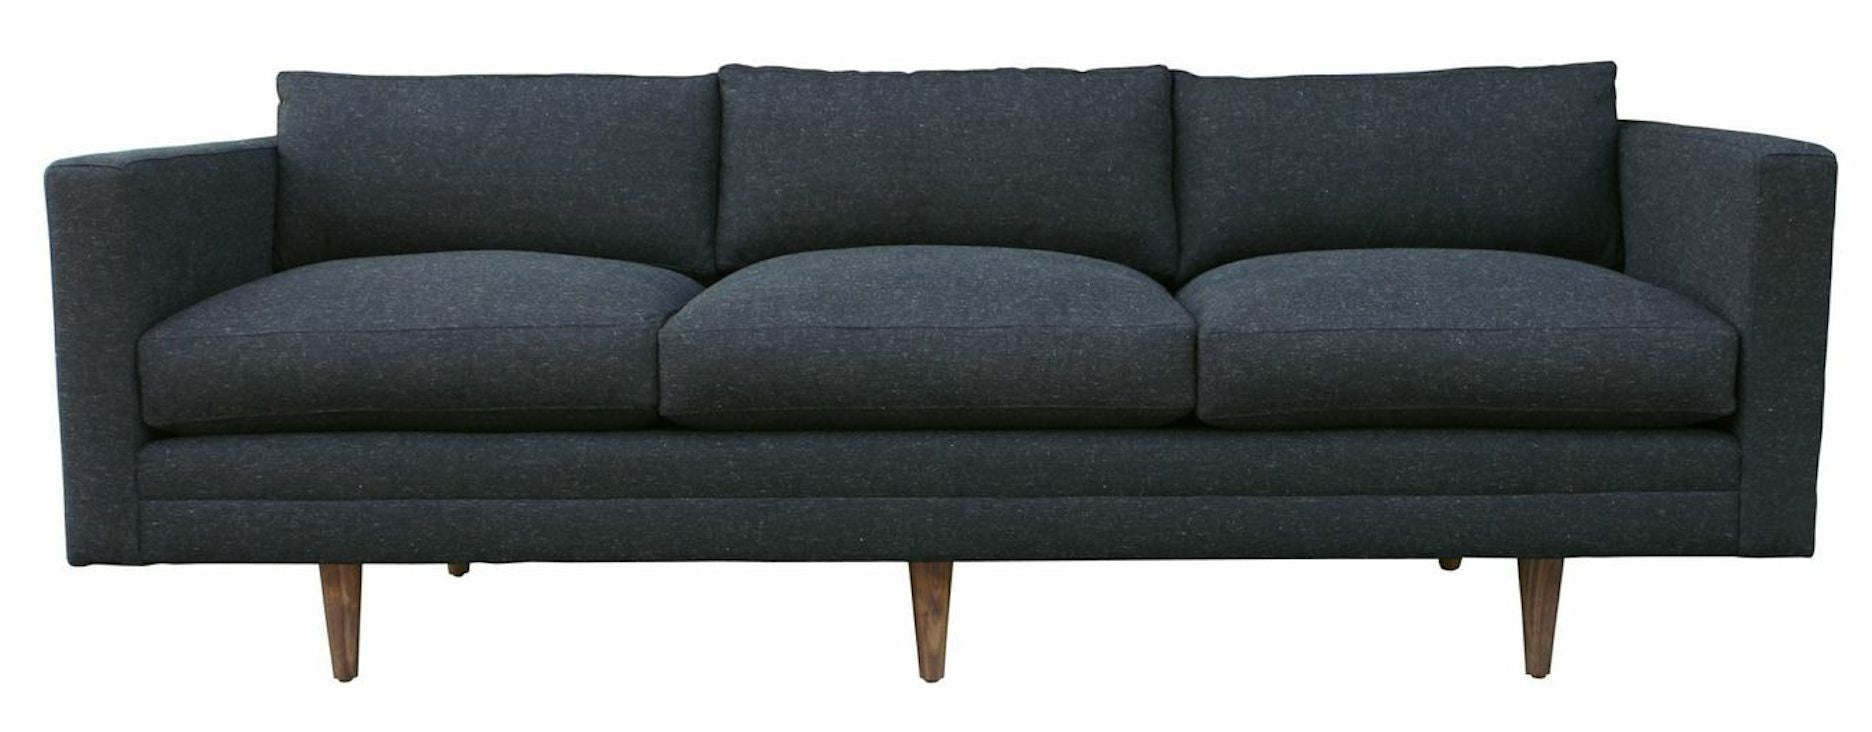 Mid Century Upholstered Sofas Sectioanals And Occassional